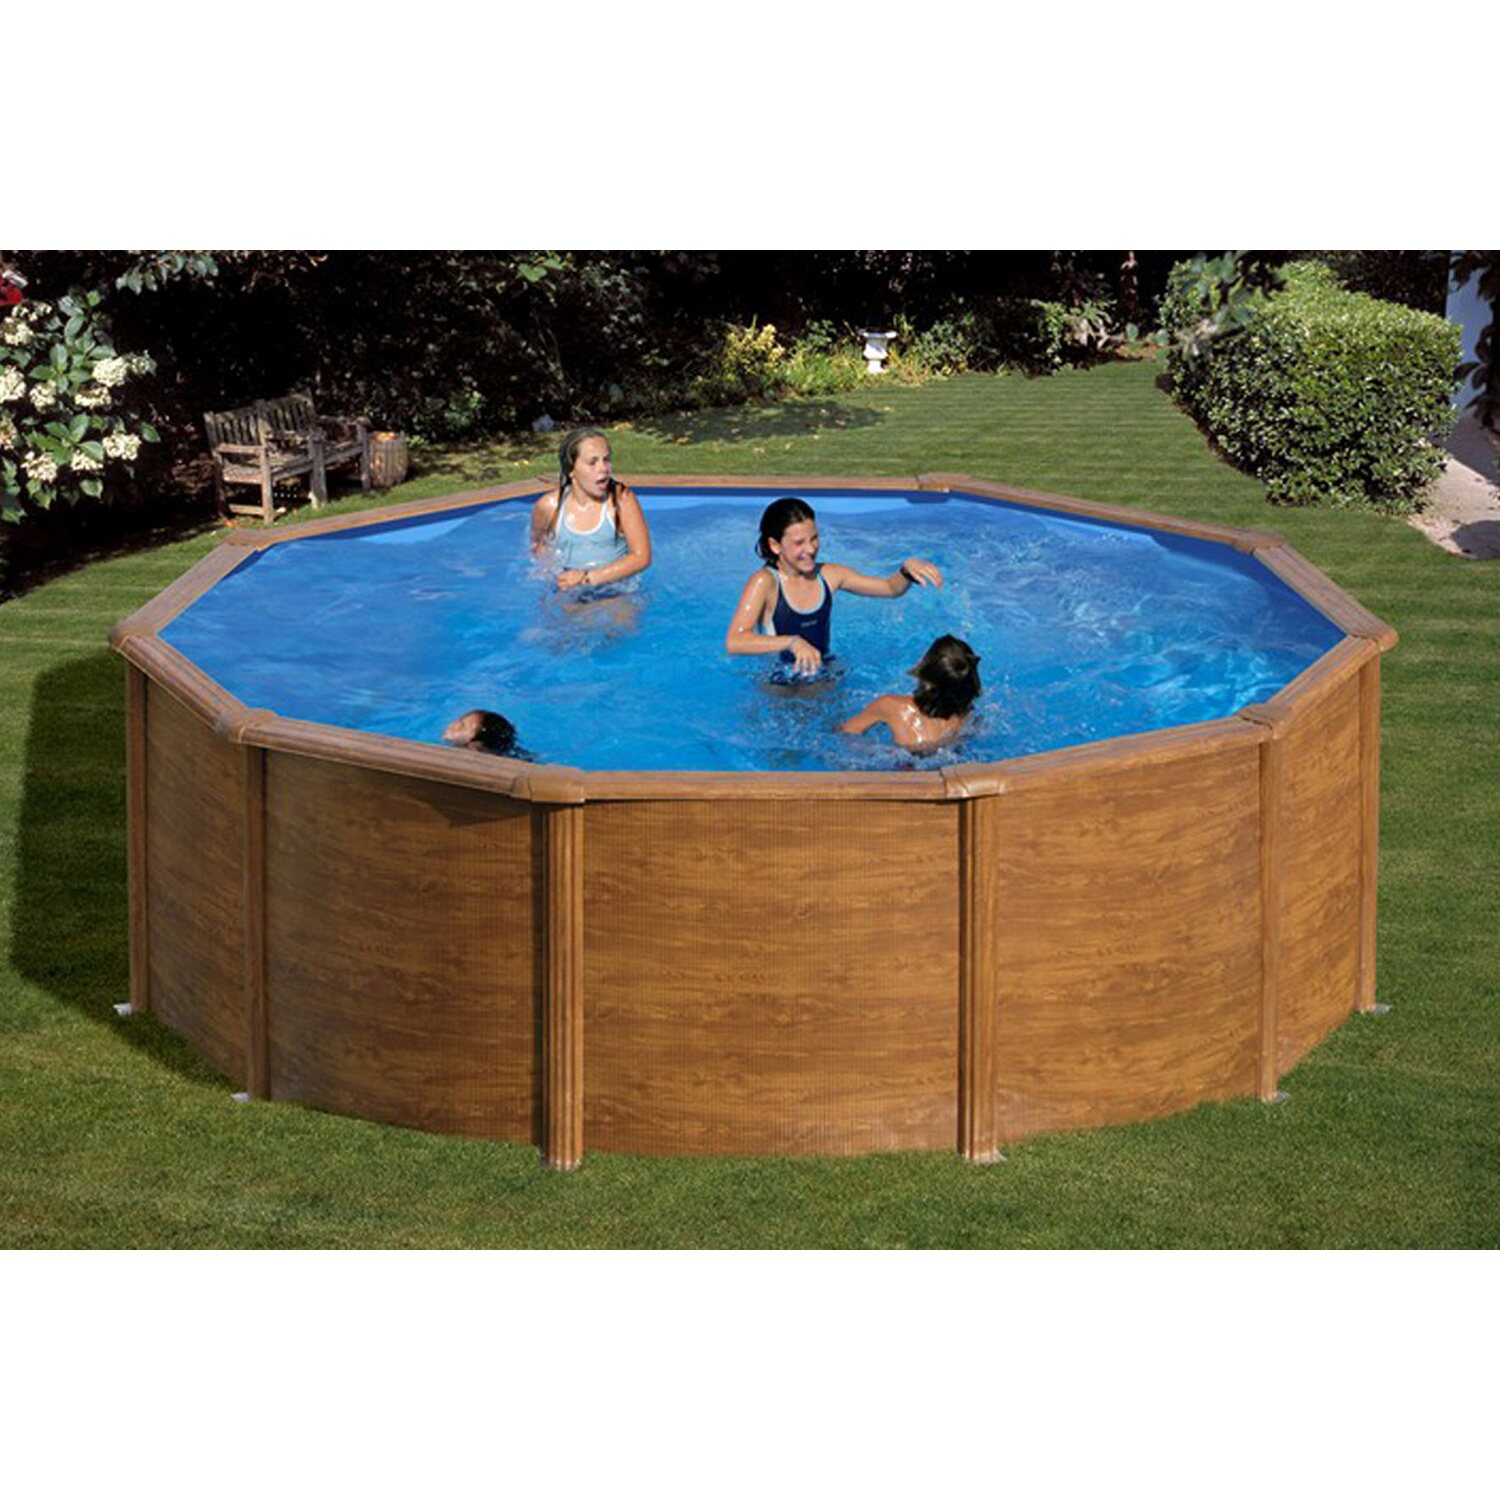 Summer fun stahlwand pool set holz dekor rhodos for Pool staubsauger obi